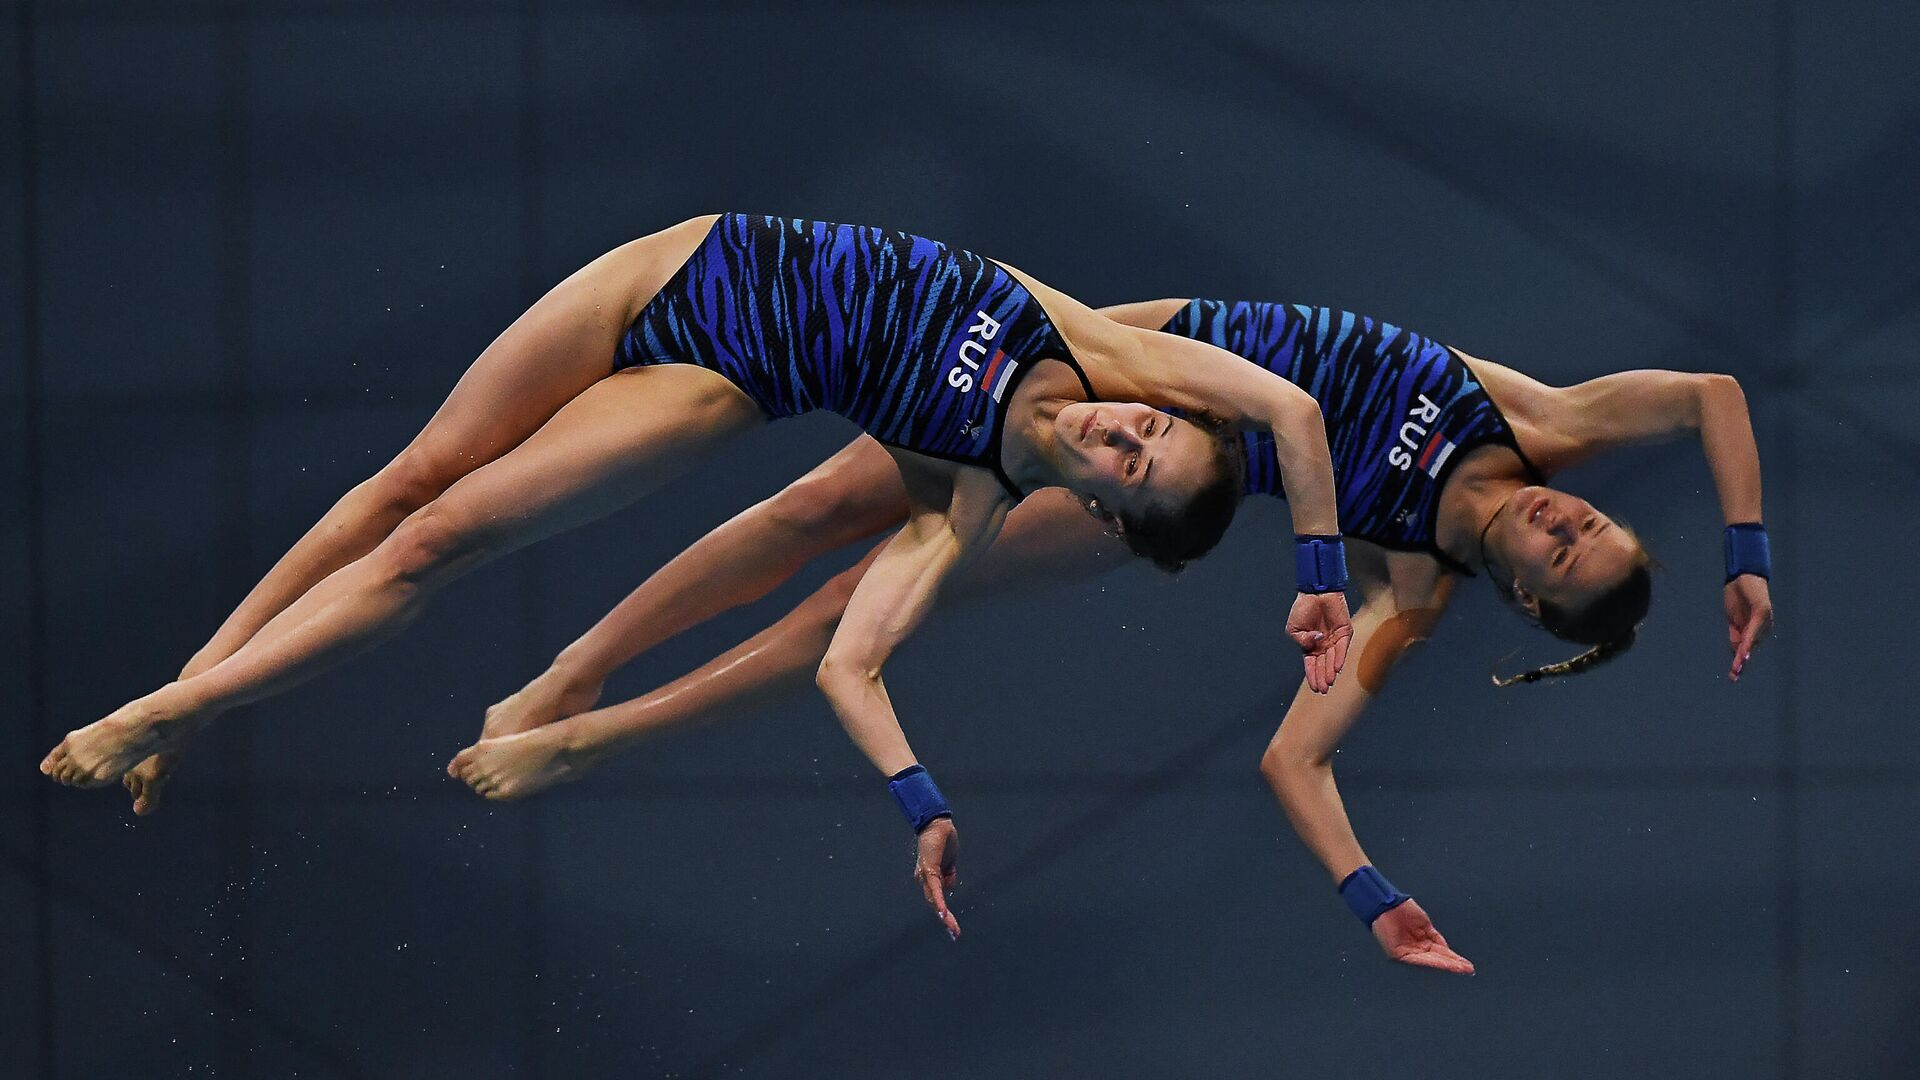 Russia's Iuliia Timoshinina (L) and Russia's Ekaterina Beliaeva compete in the Women's Synchronised 10m Platform Diving event during the LEN European Aquatics Championships at the Duna Arena in Budapest on May 14, 2021. (Photo by Attila KISBENEDEK / AFP) - РИА Новости, 1920, 14.05.2021